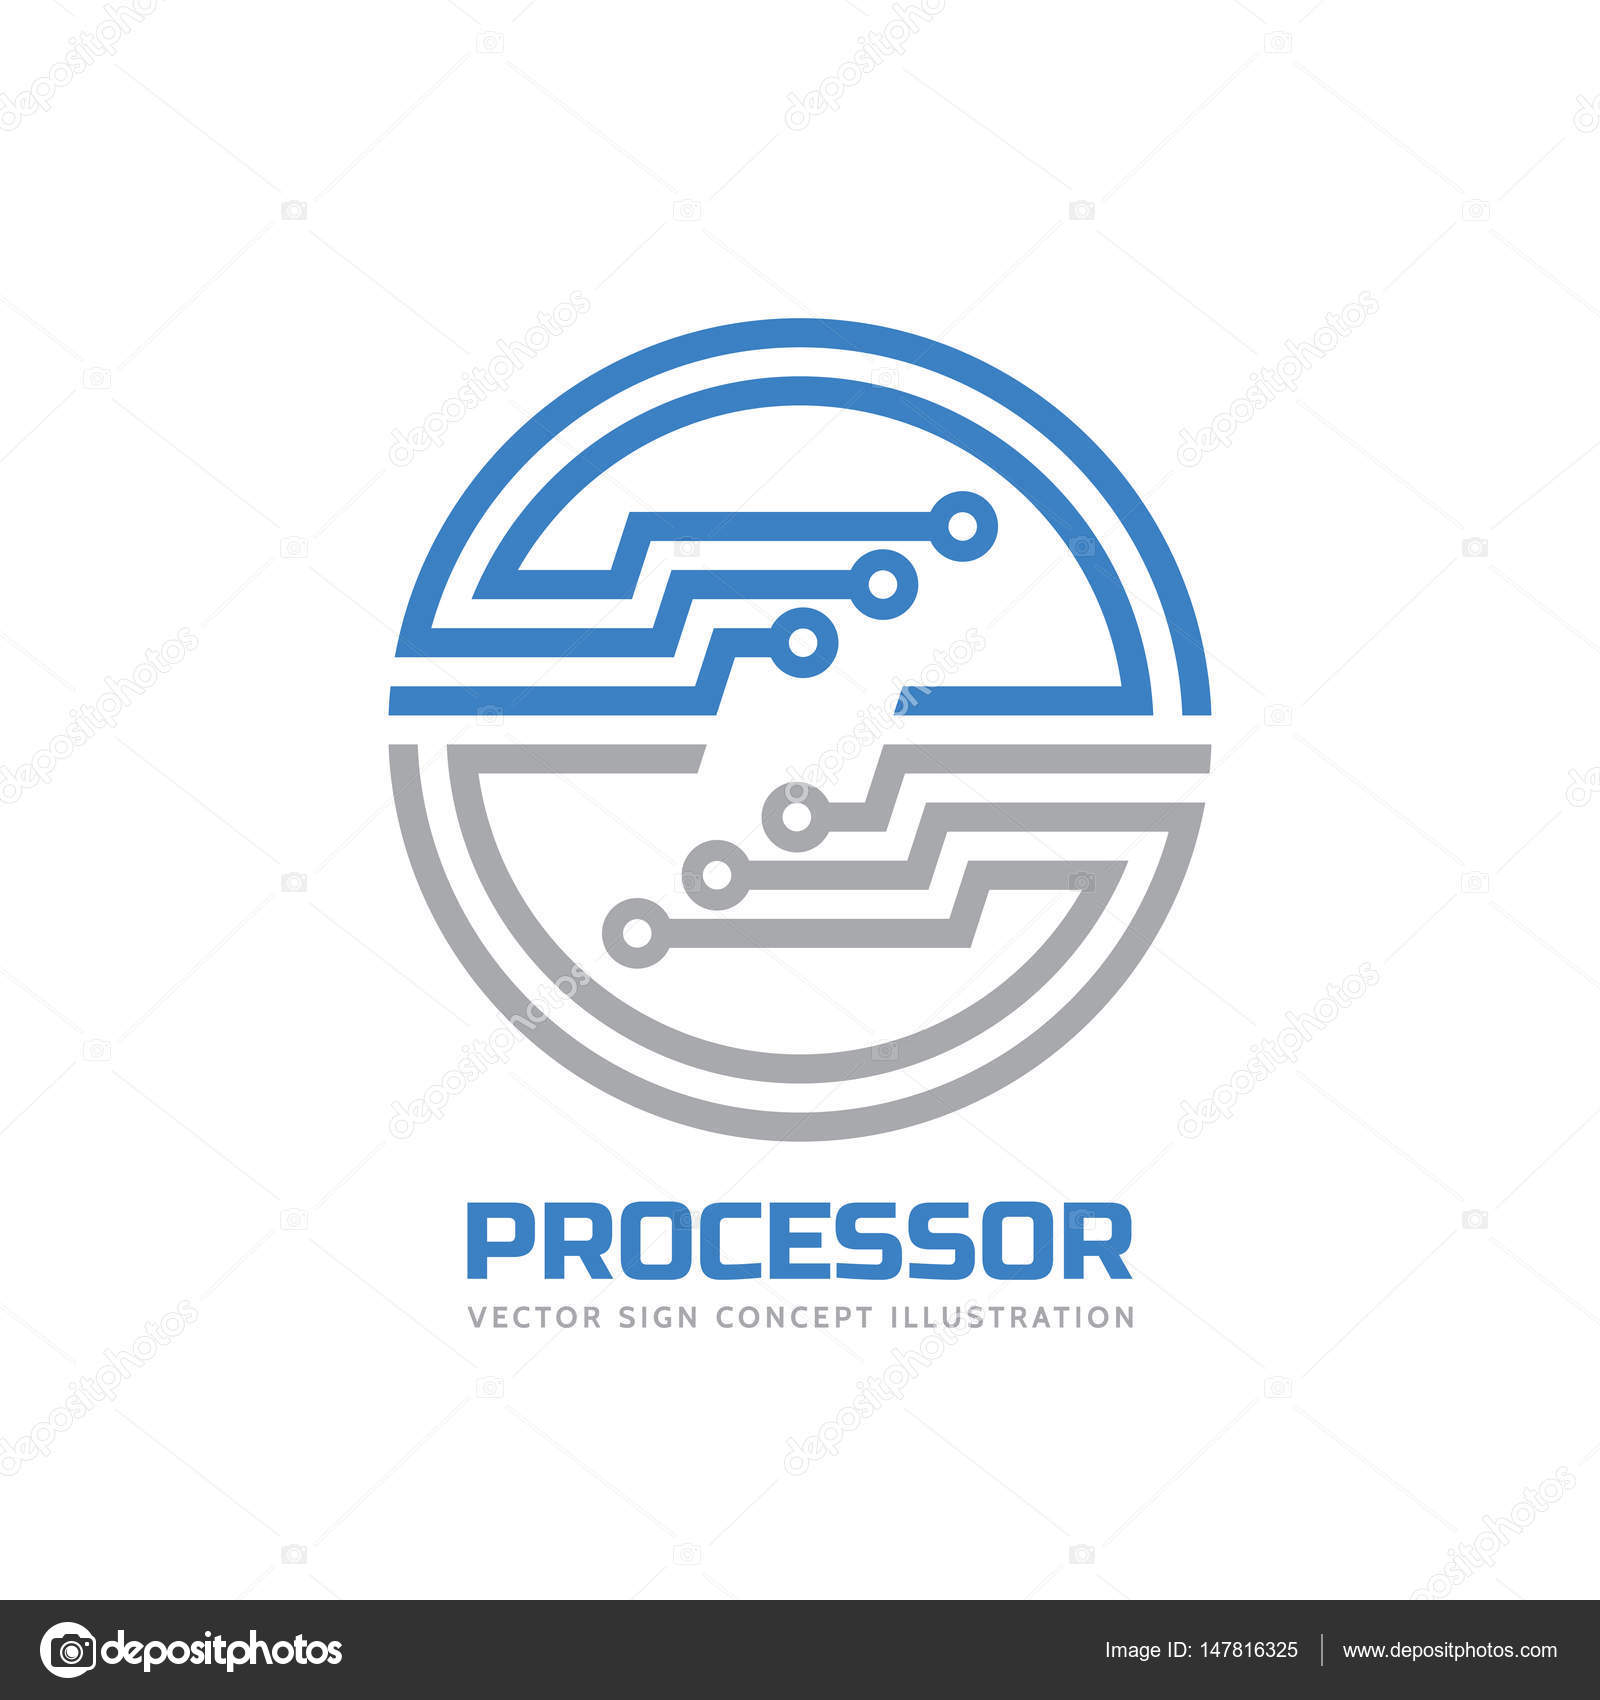 processor cpu vector logo template for corporate identity abstract computer chip sign network internet technology concept illustration design element stock vector c serkorkin 147816325 https depositphotos com 147816325 stock illustration processor cpu vector logo template html